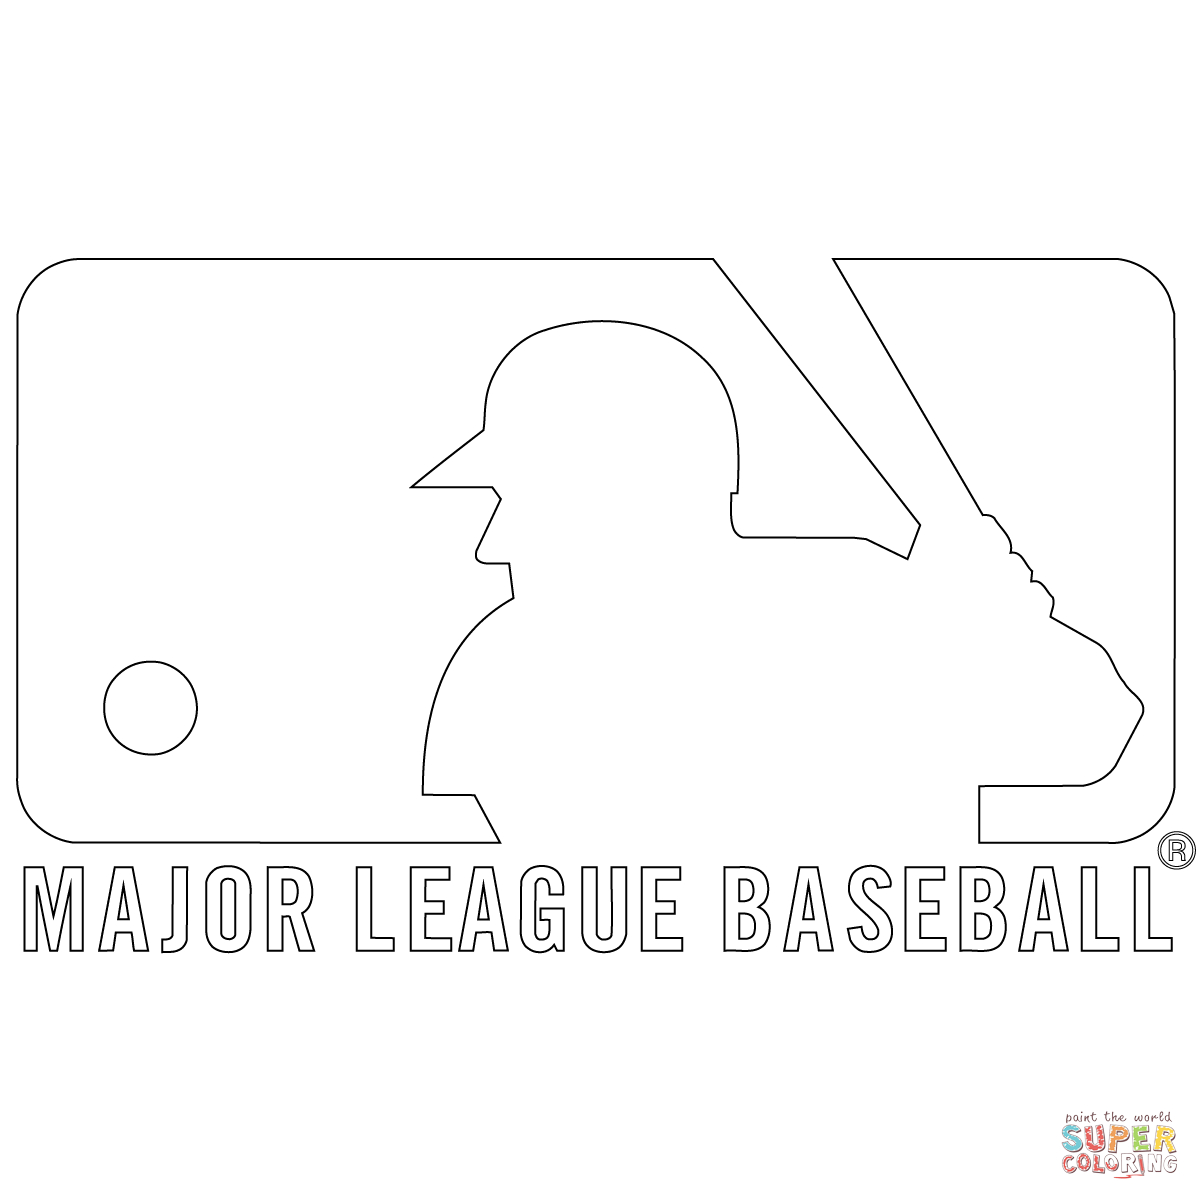 Mlb Logo Coloring Page | Free Printable Coloring Pages - Free Printable Baseball Logos